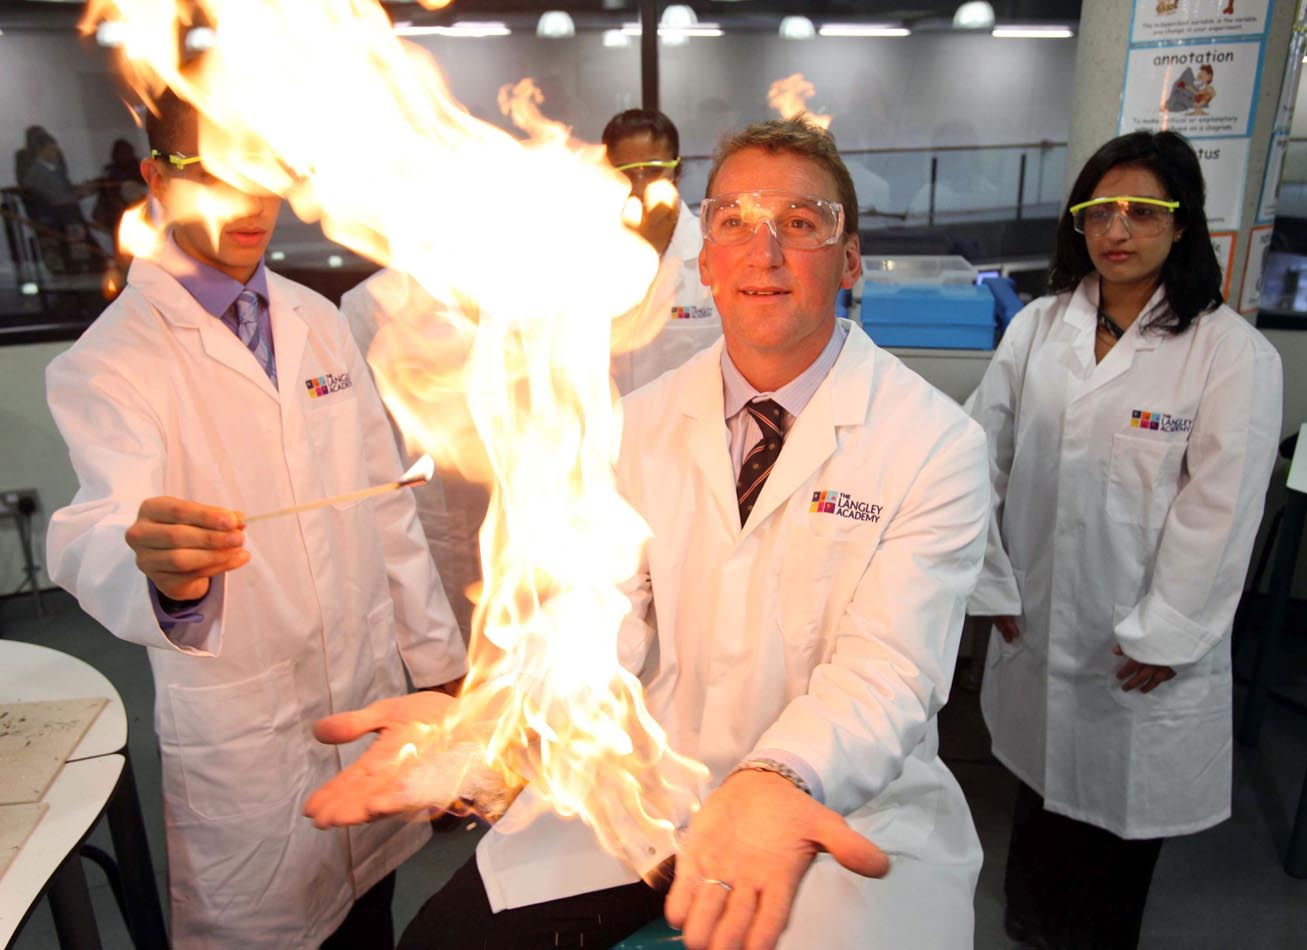 Sir Matthew Pinsent takes part in a science experiment at the official launch of The Langley Academy.